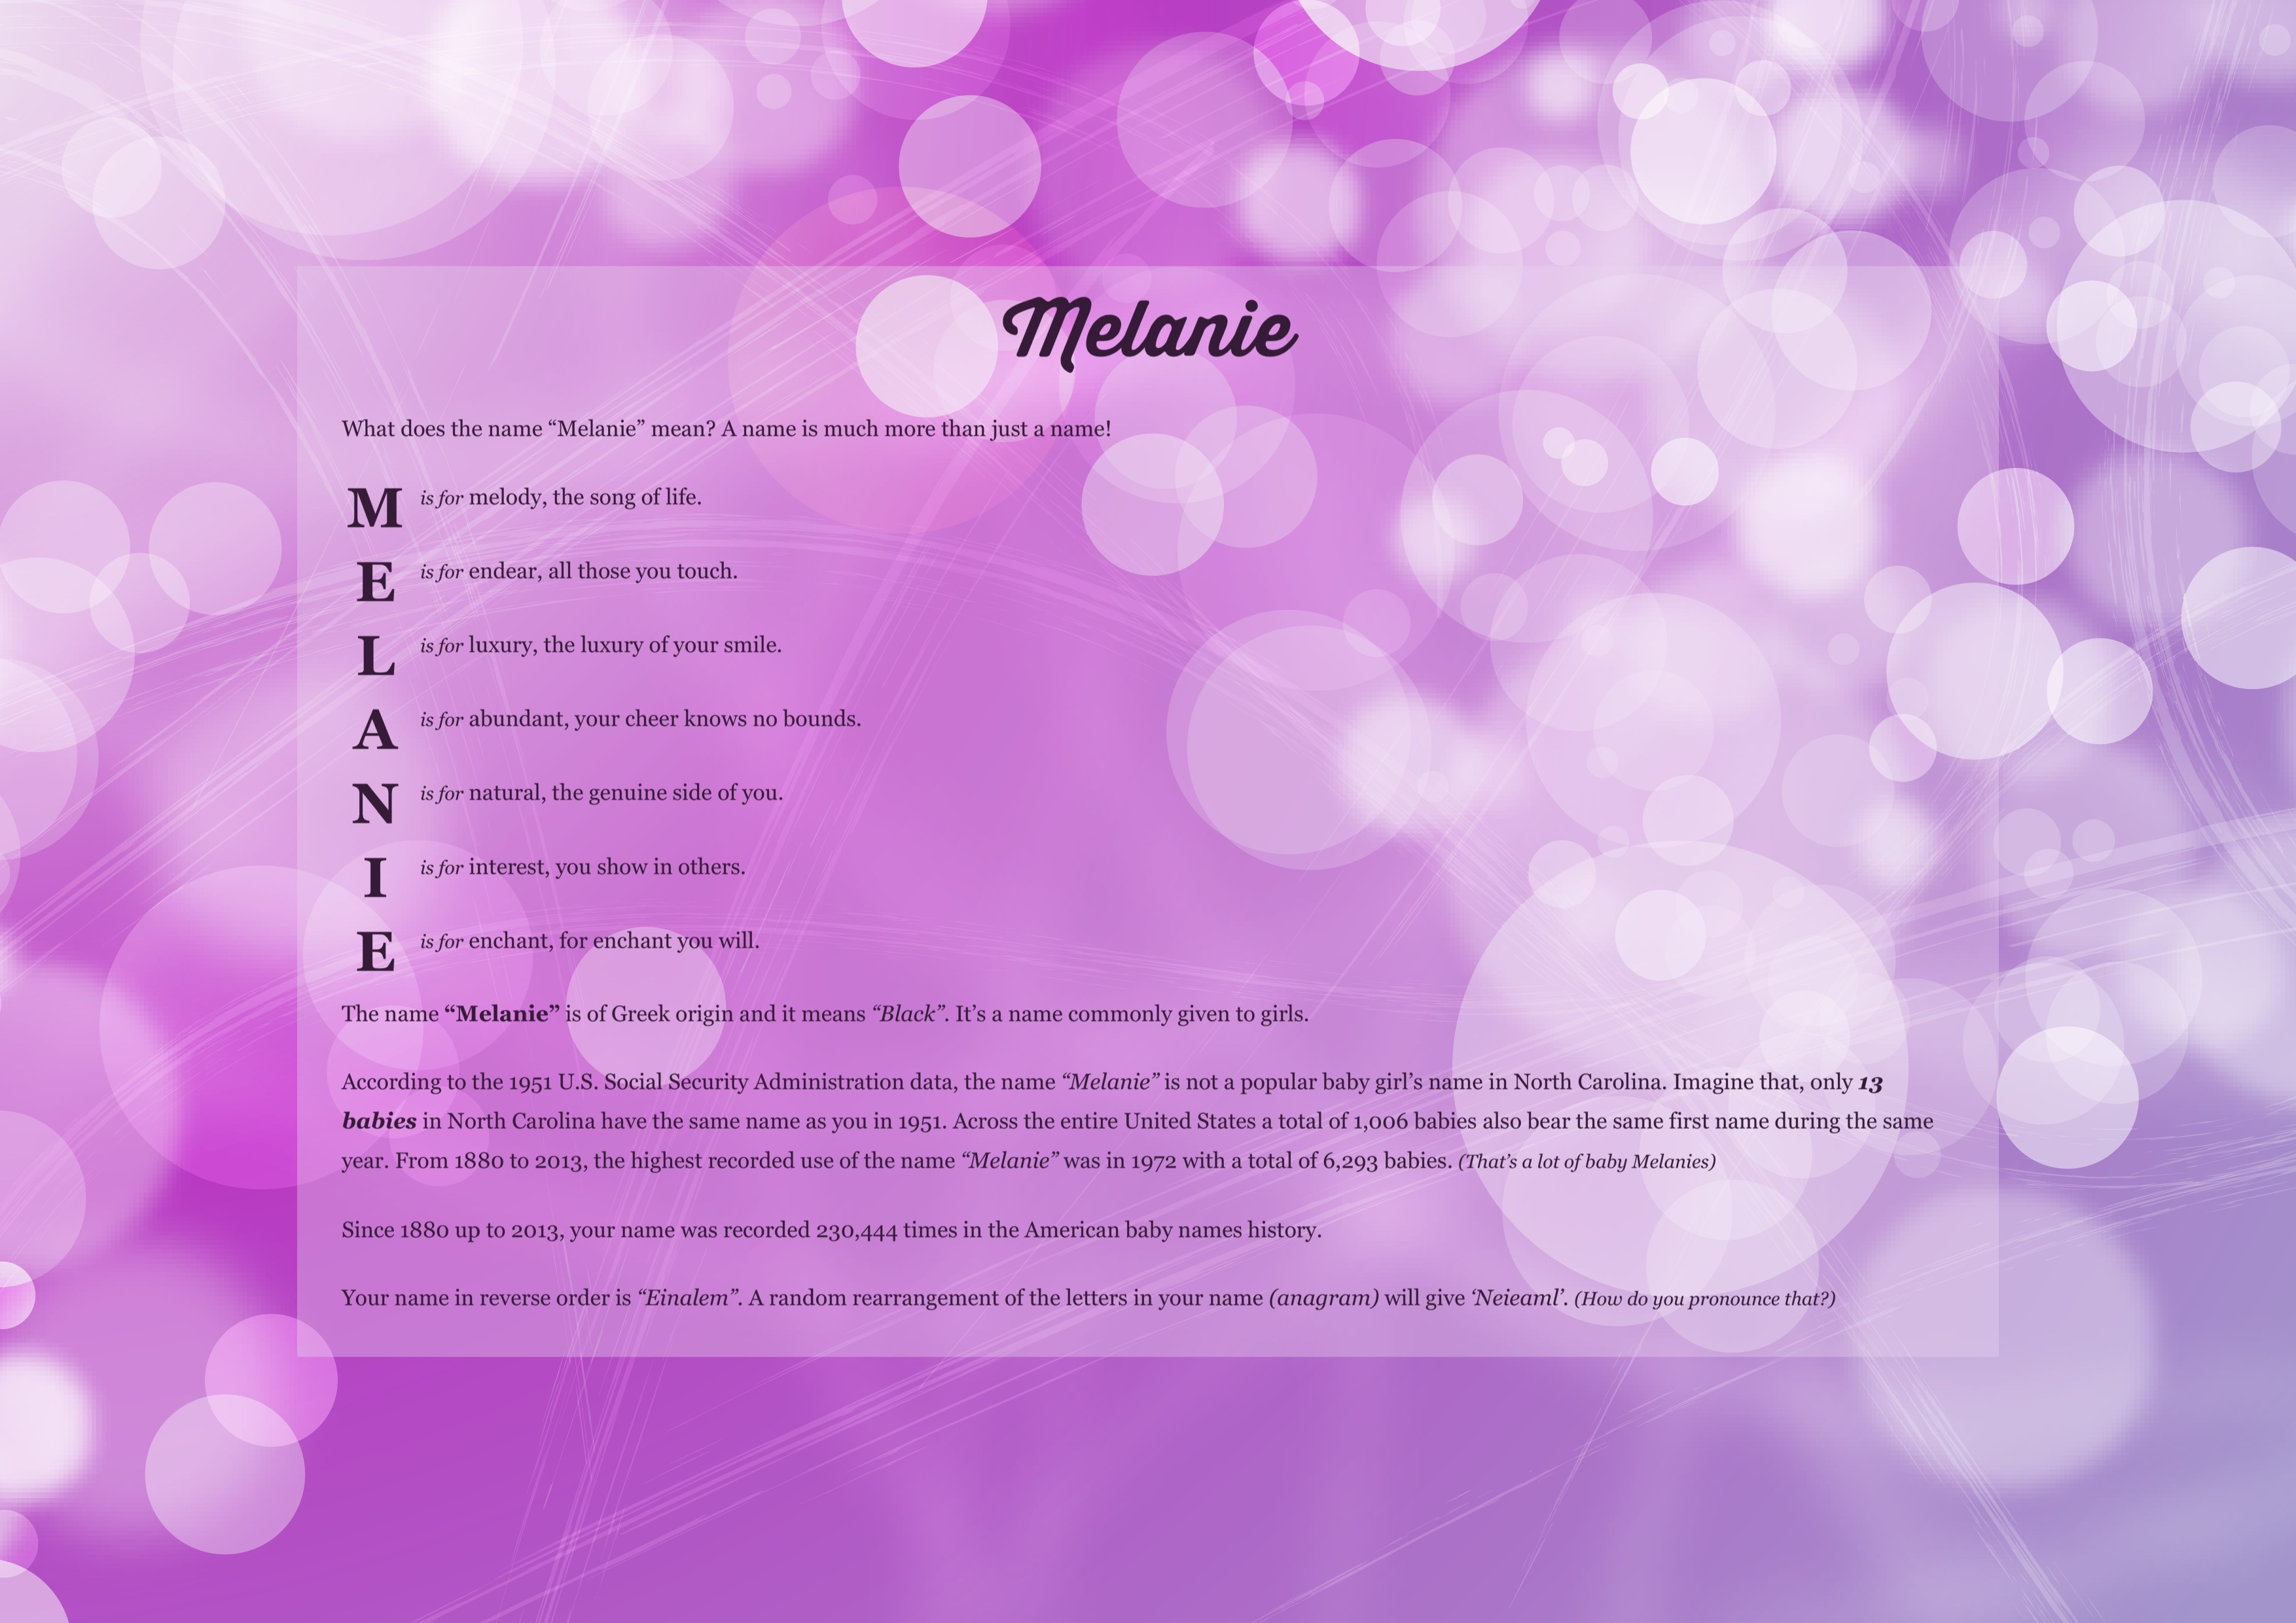 The meaning of name melanie using sweet sixteen from the project pack